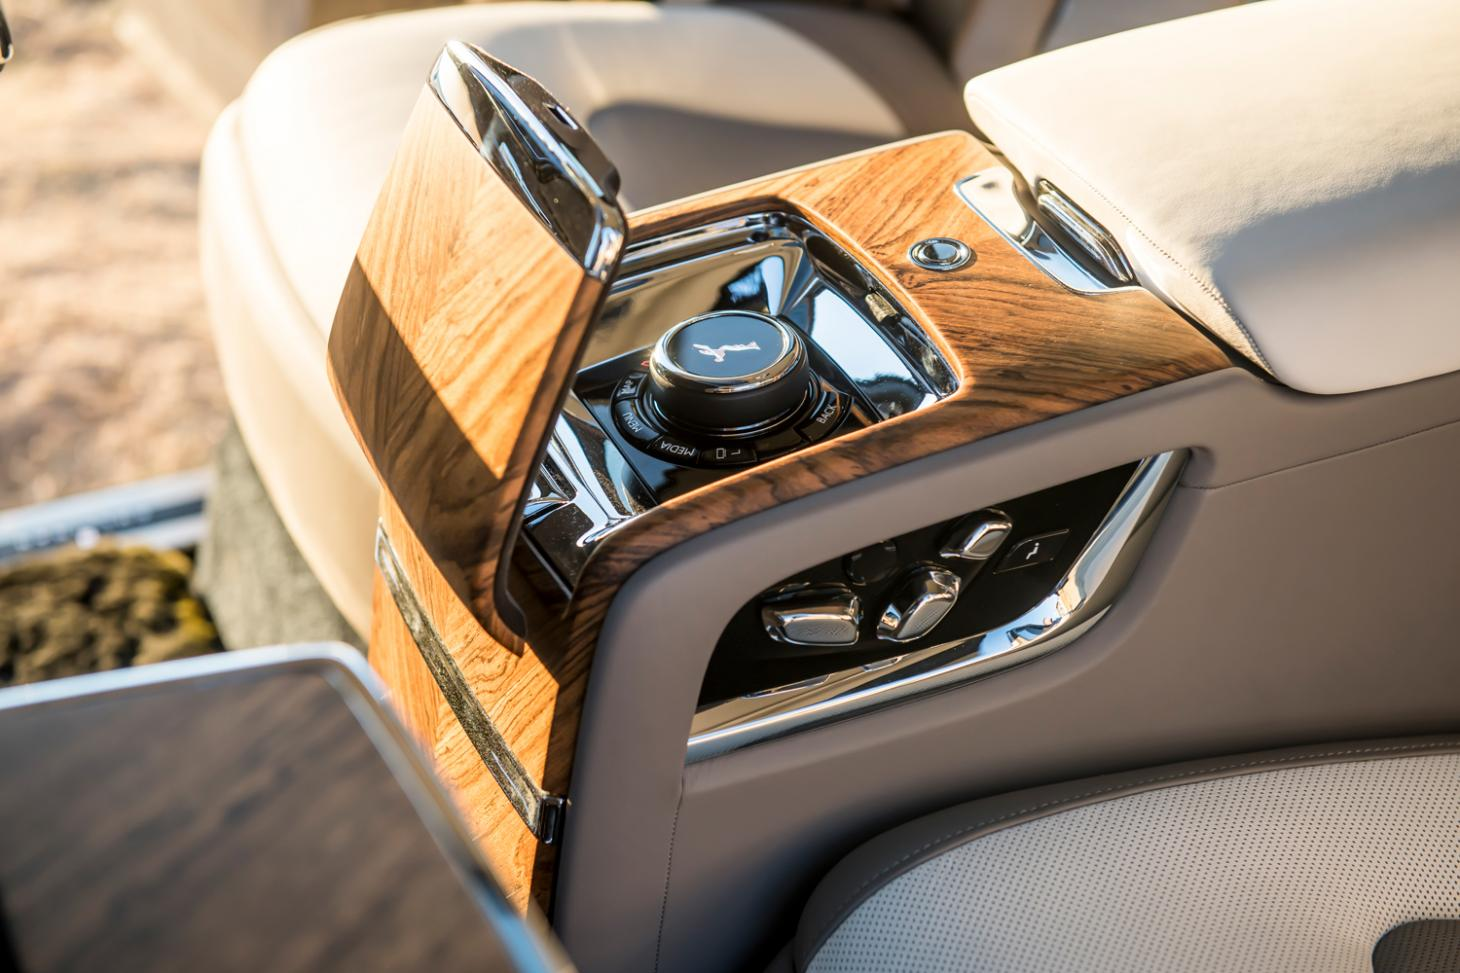 Interior design detail view of the new Rolls-Royce Cullinan SUV